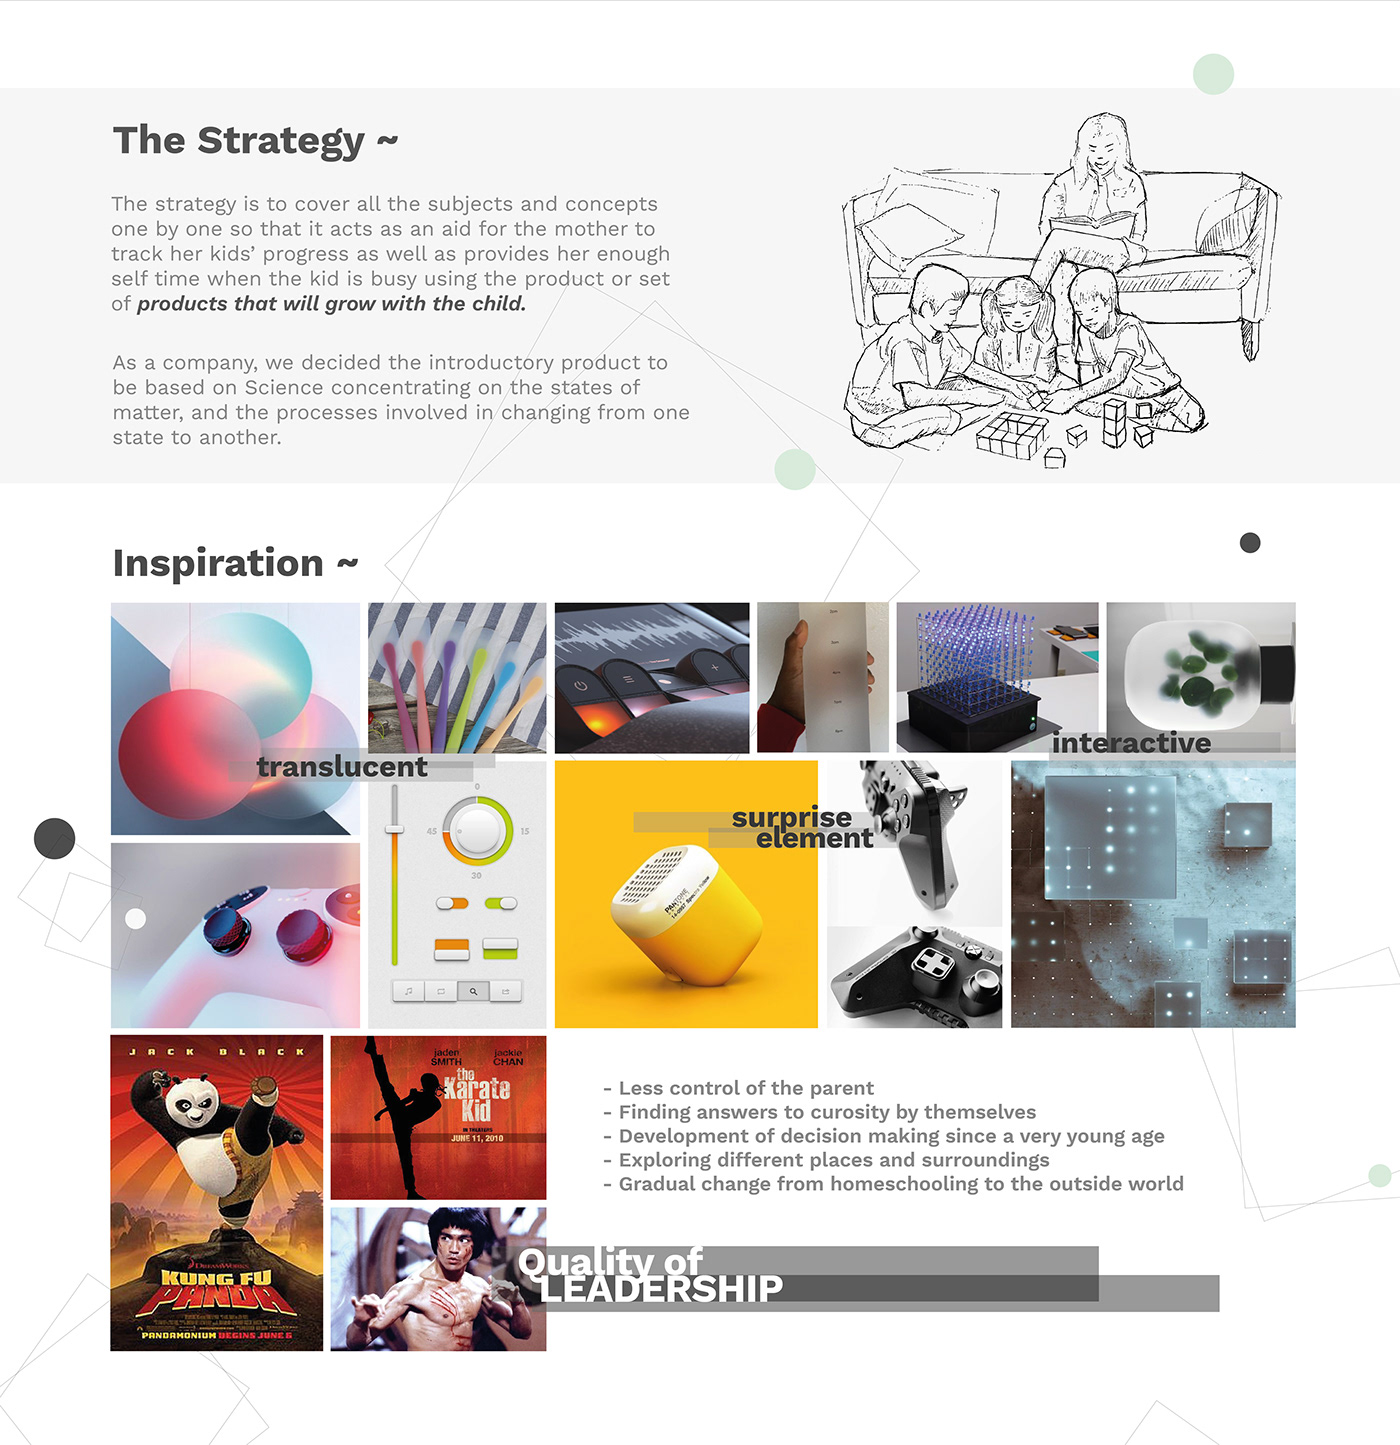 design research designing for kids emotions Holistic development industrial design  learn through play product design  science sensorial learning toy design